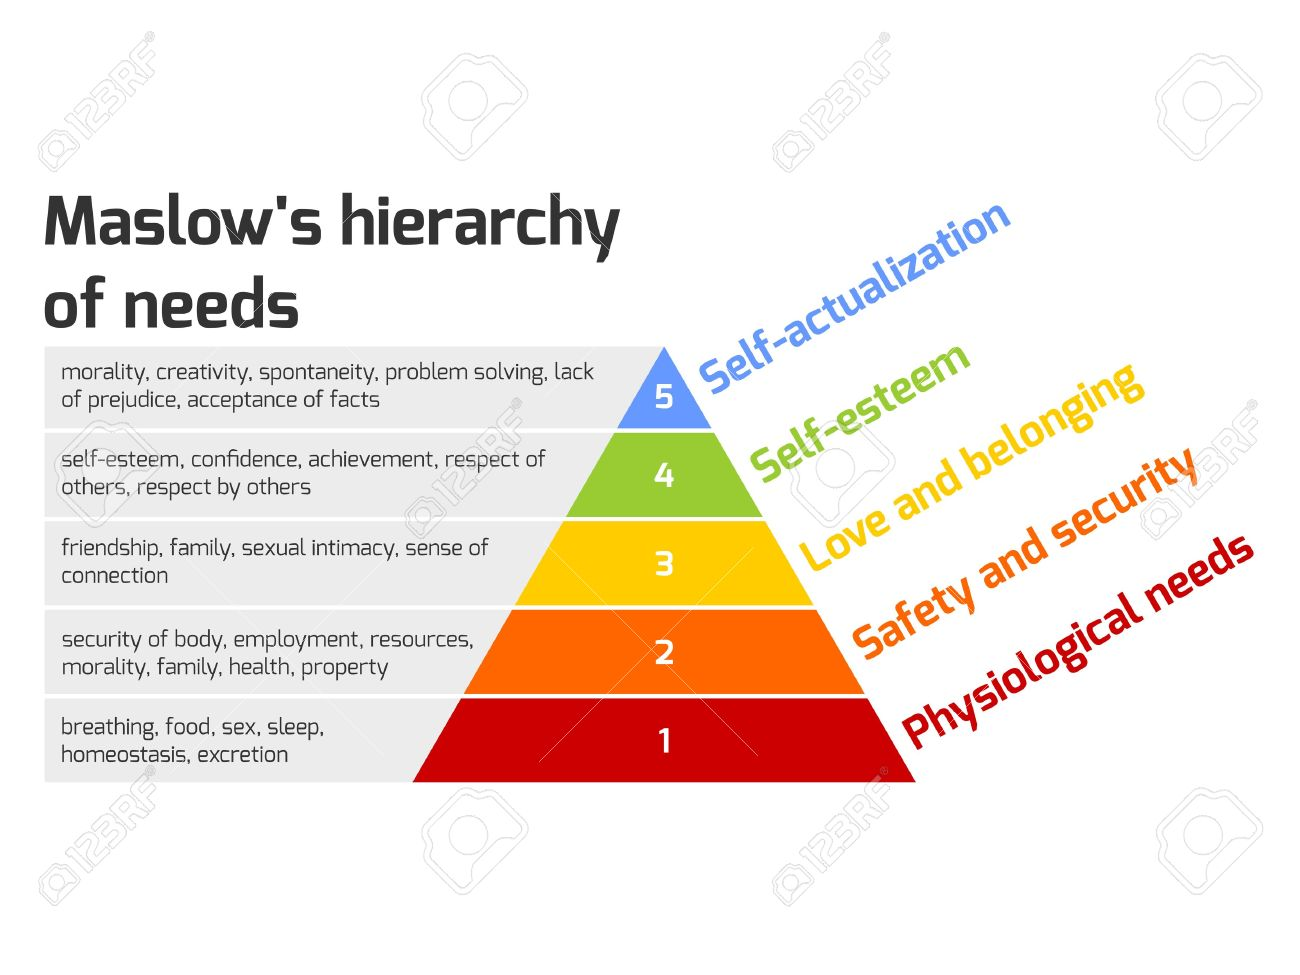 Maslows hierarchy of needs represented as a pyramid with the maslows hierarchy of needs represented as a pyramid with the more basic needs at the bottom publicscrutiny Images